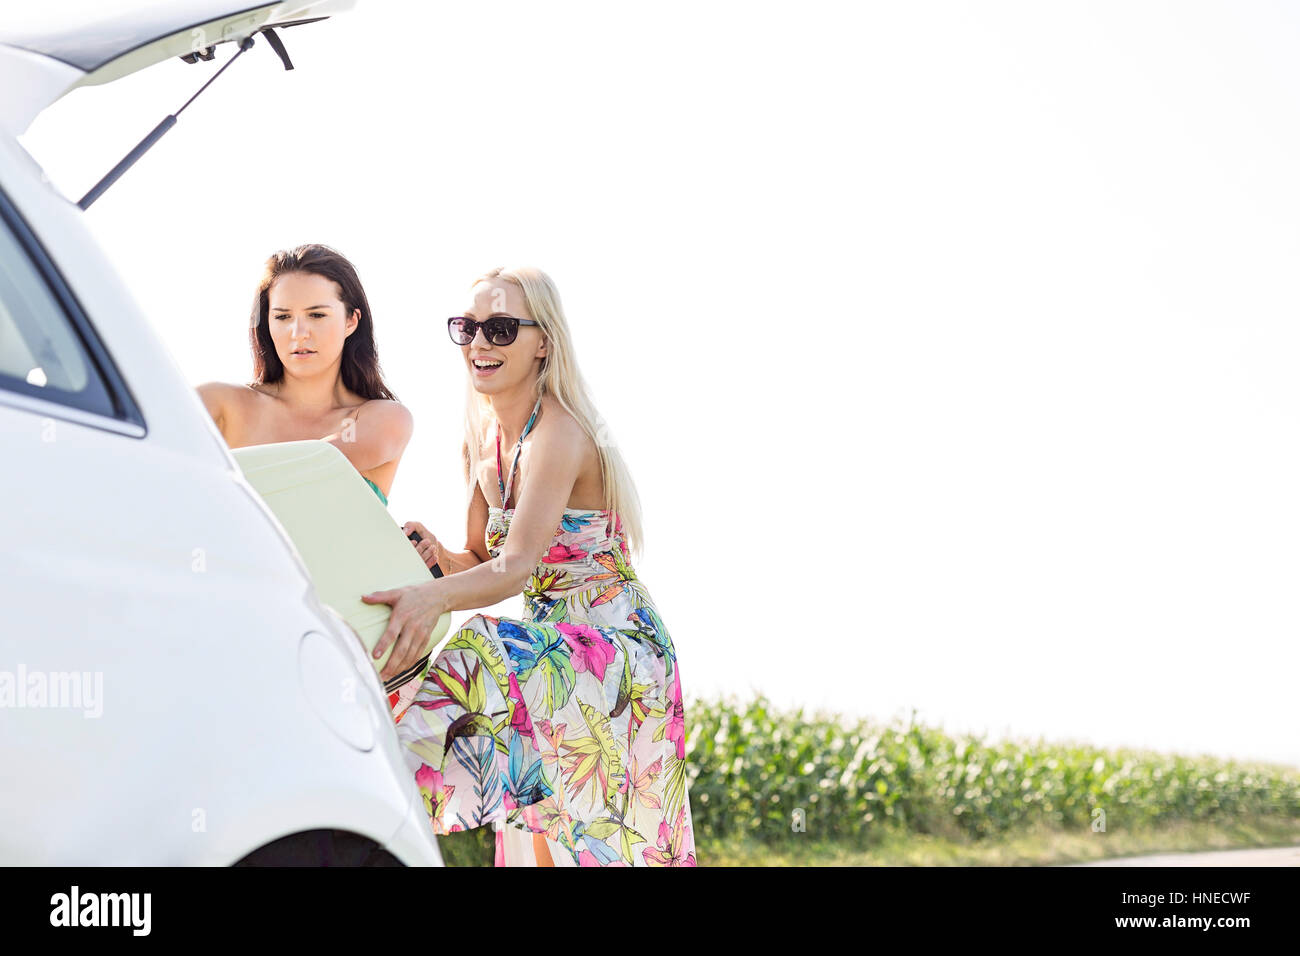 Happy female friends loading luggage in car trunk against clear sky - Stock Image